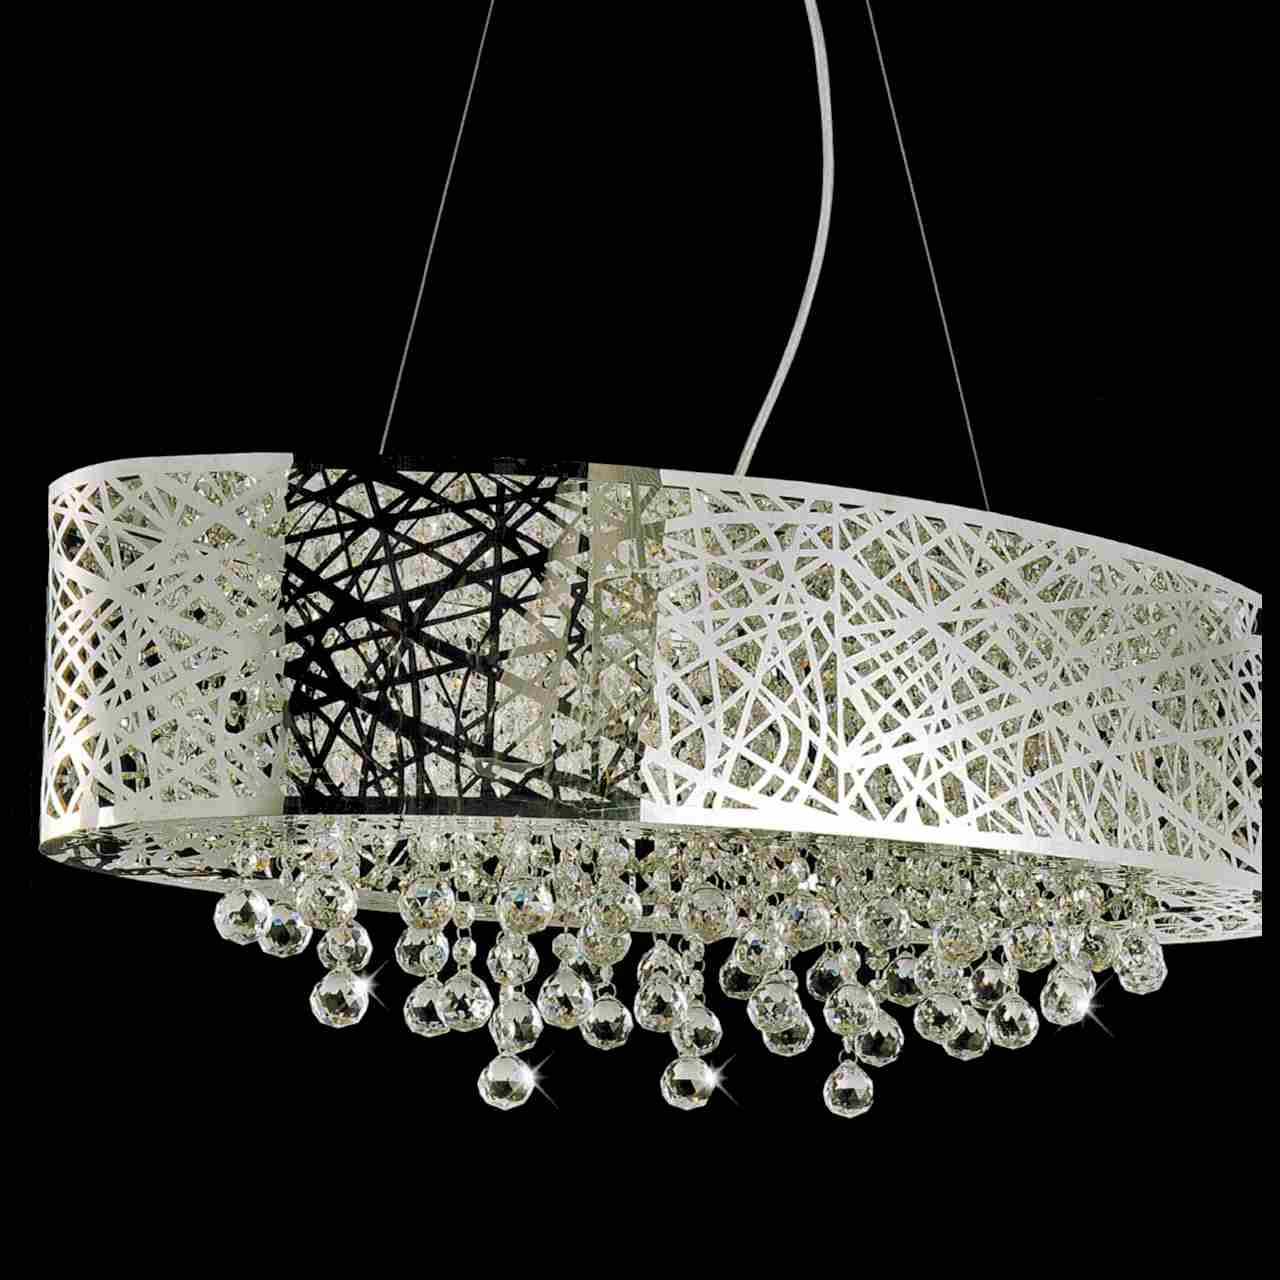 home mount lightinthebox in fixture crystal chandeliers light style pendant chandelier drum silver cylinder shade ceiling lighting flush dp modern